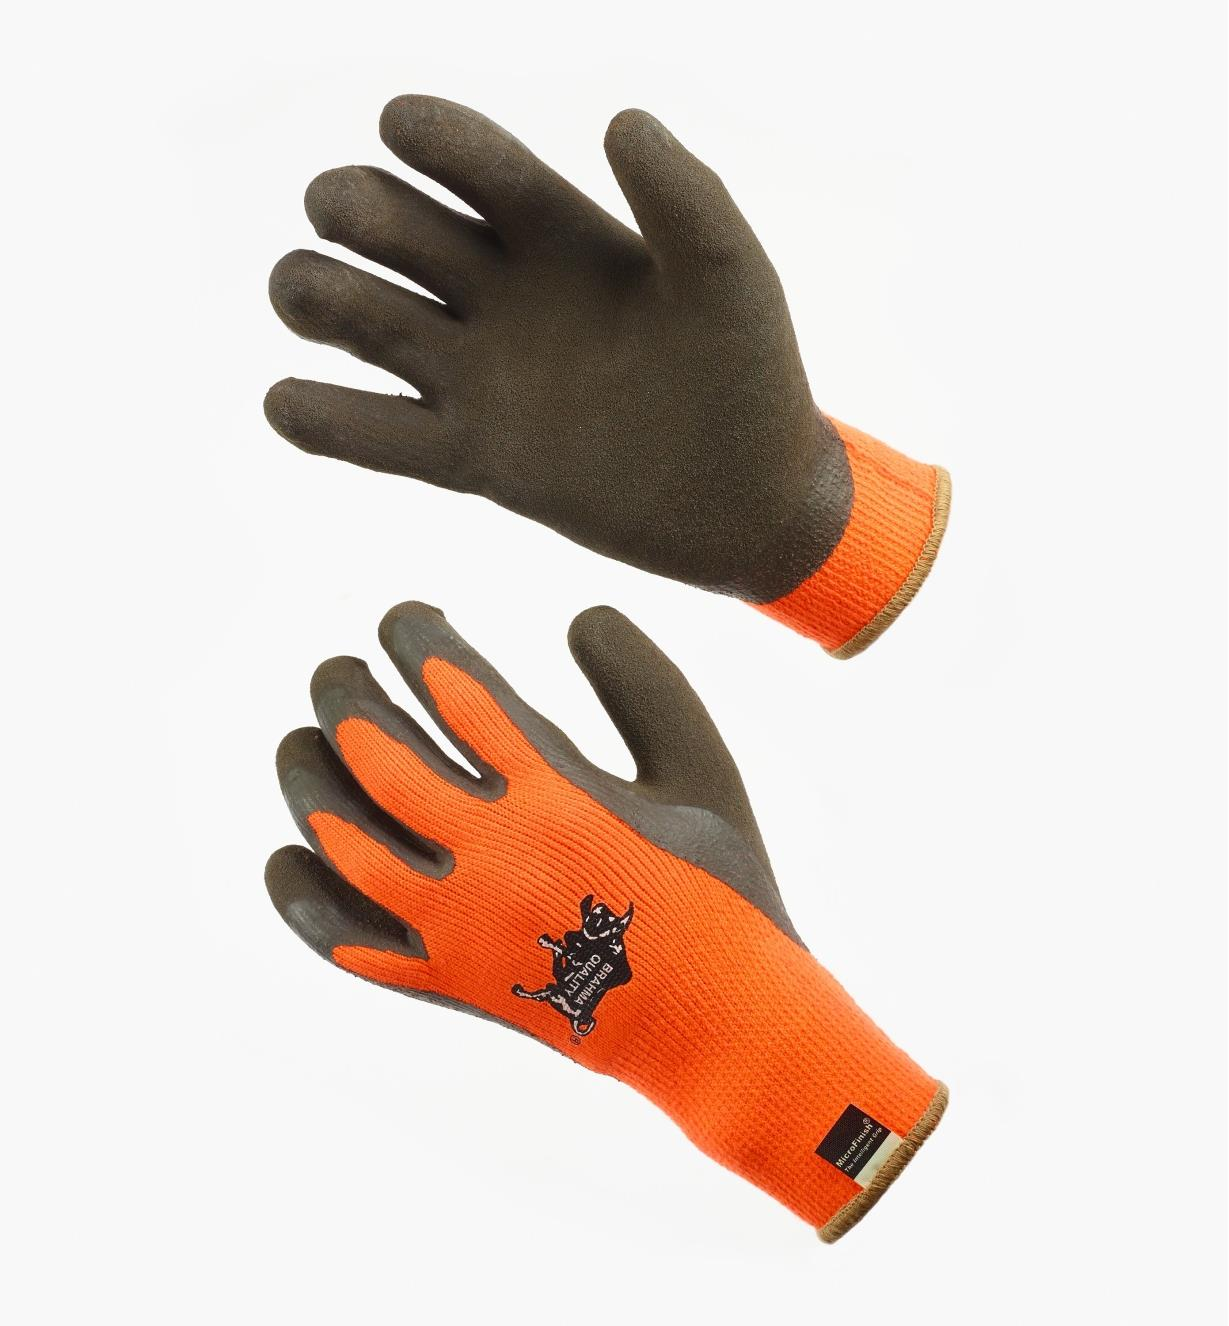 AH201 - Thermal Gripper Gloves, S (size 7)